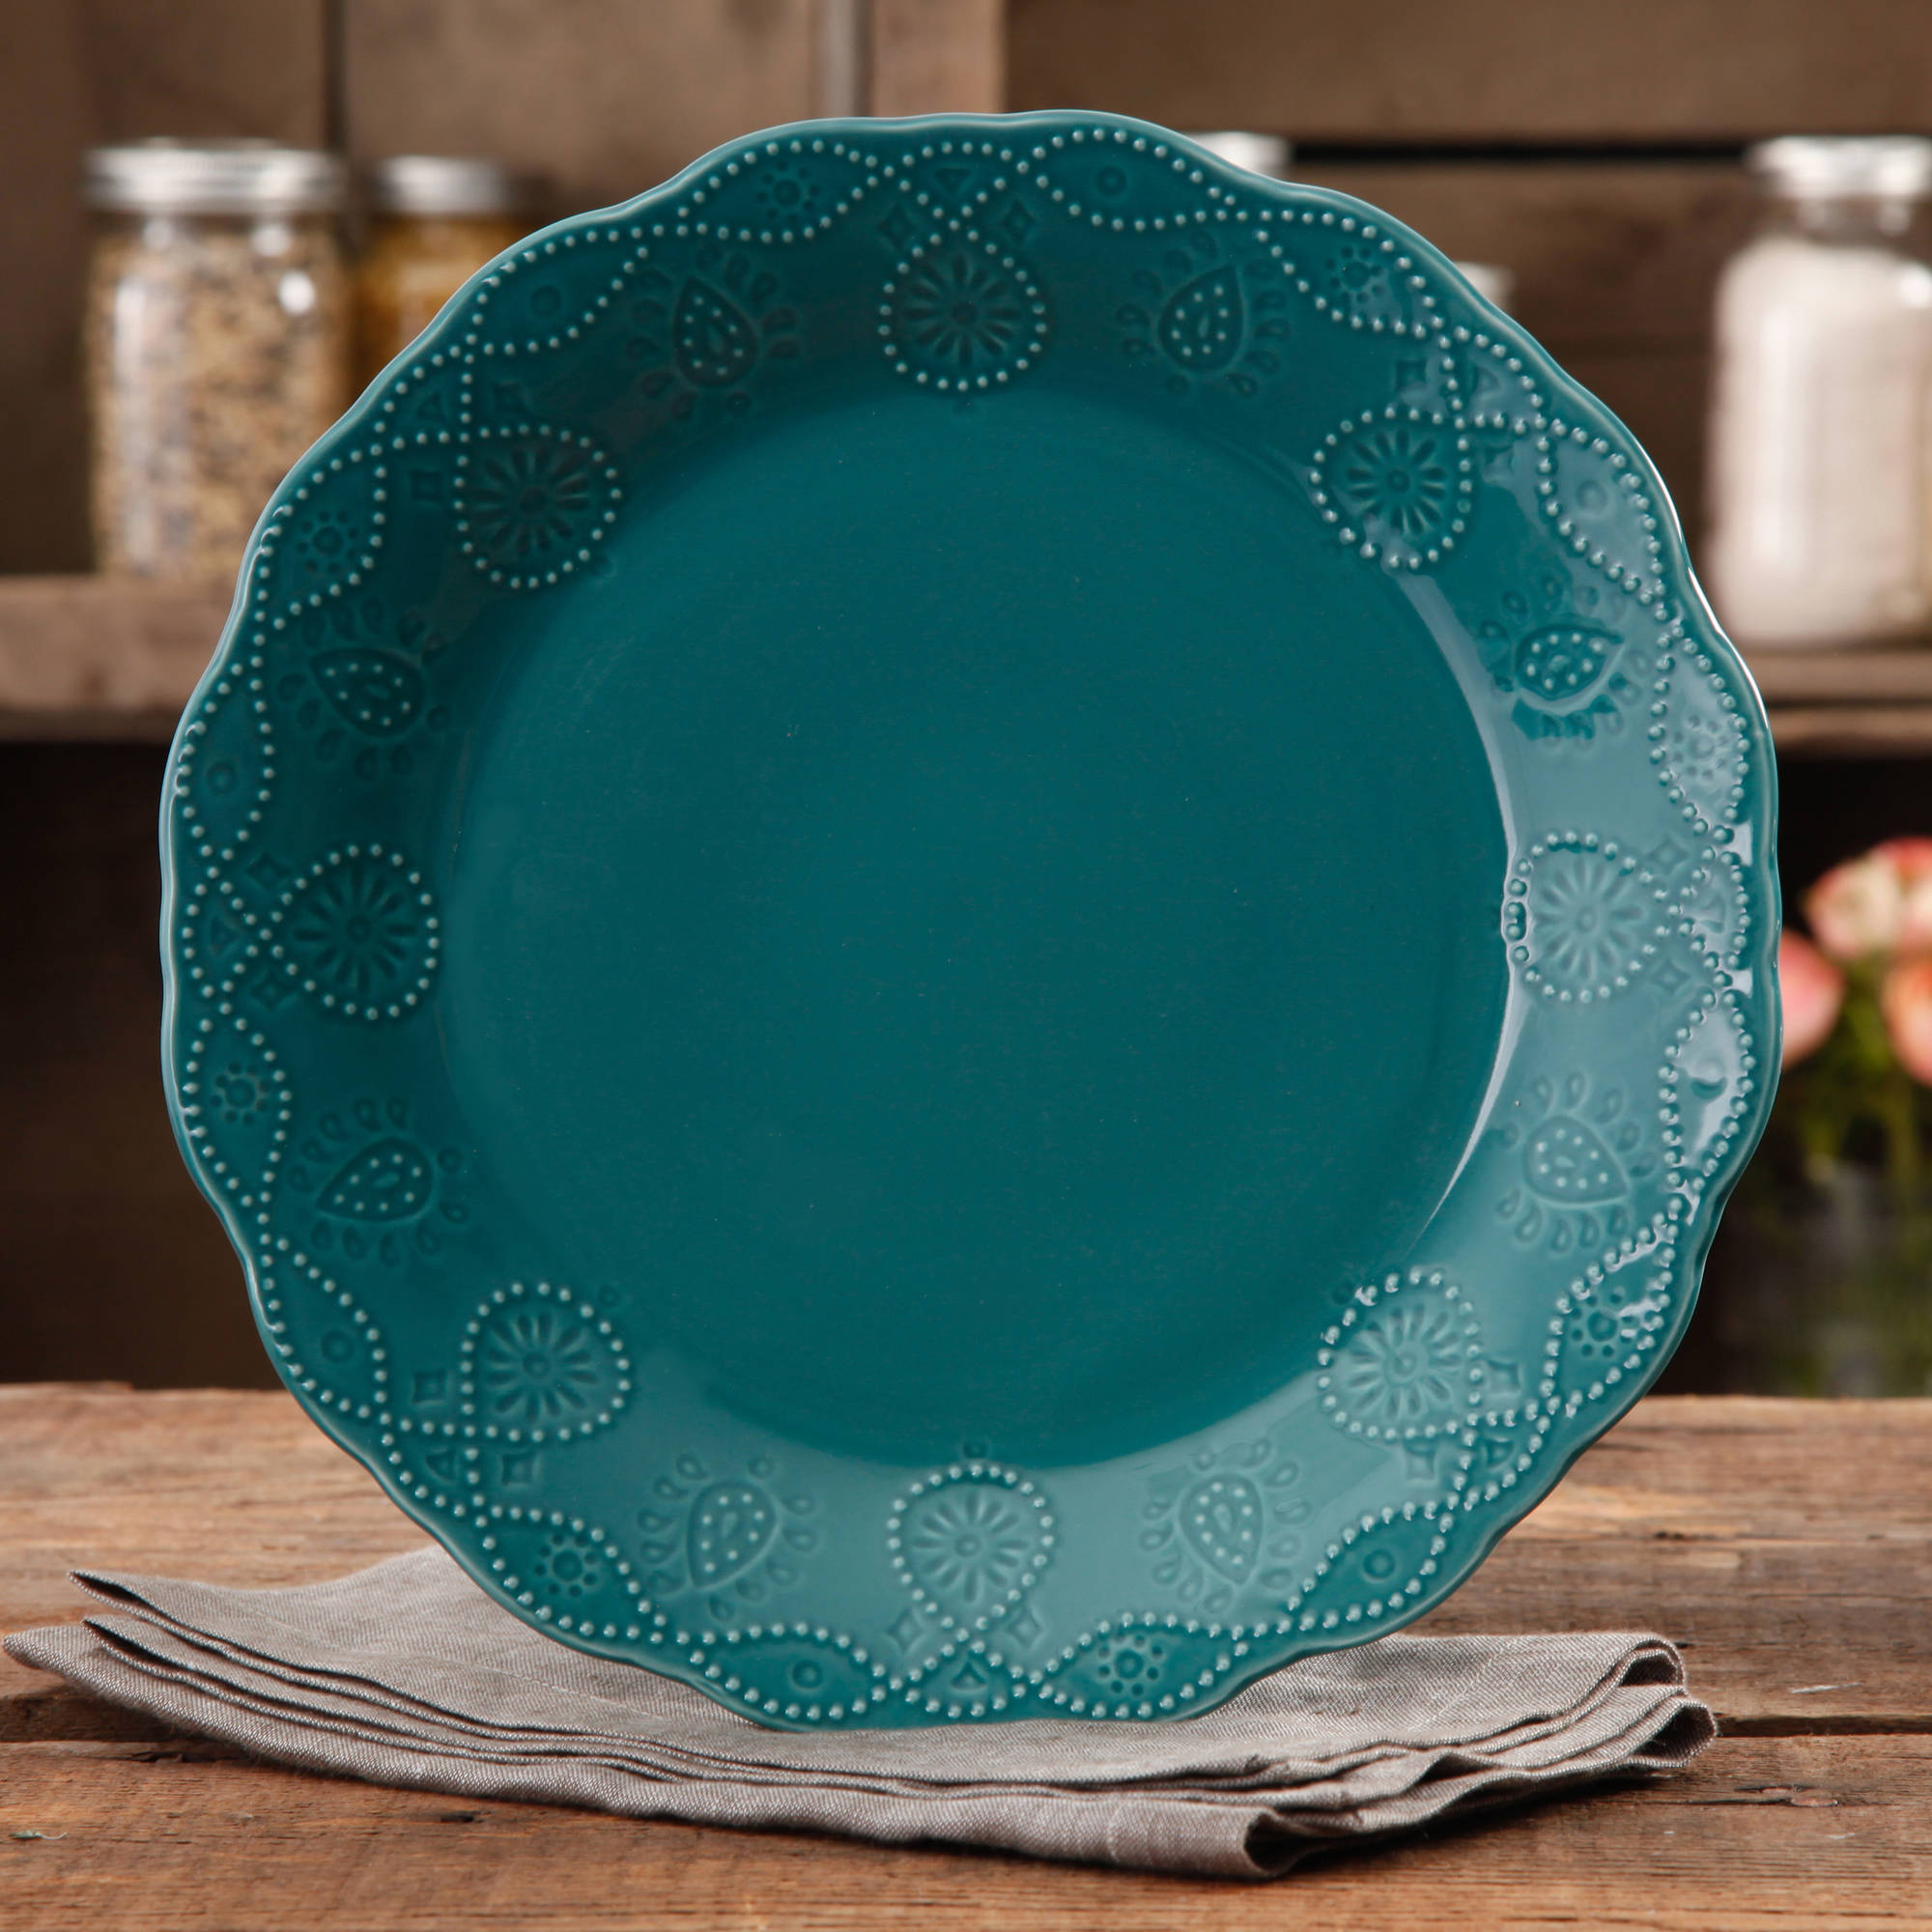 & The Pioneer Woman Cowgirl Lace Teal Dinner Plate - Walmart.com